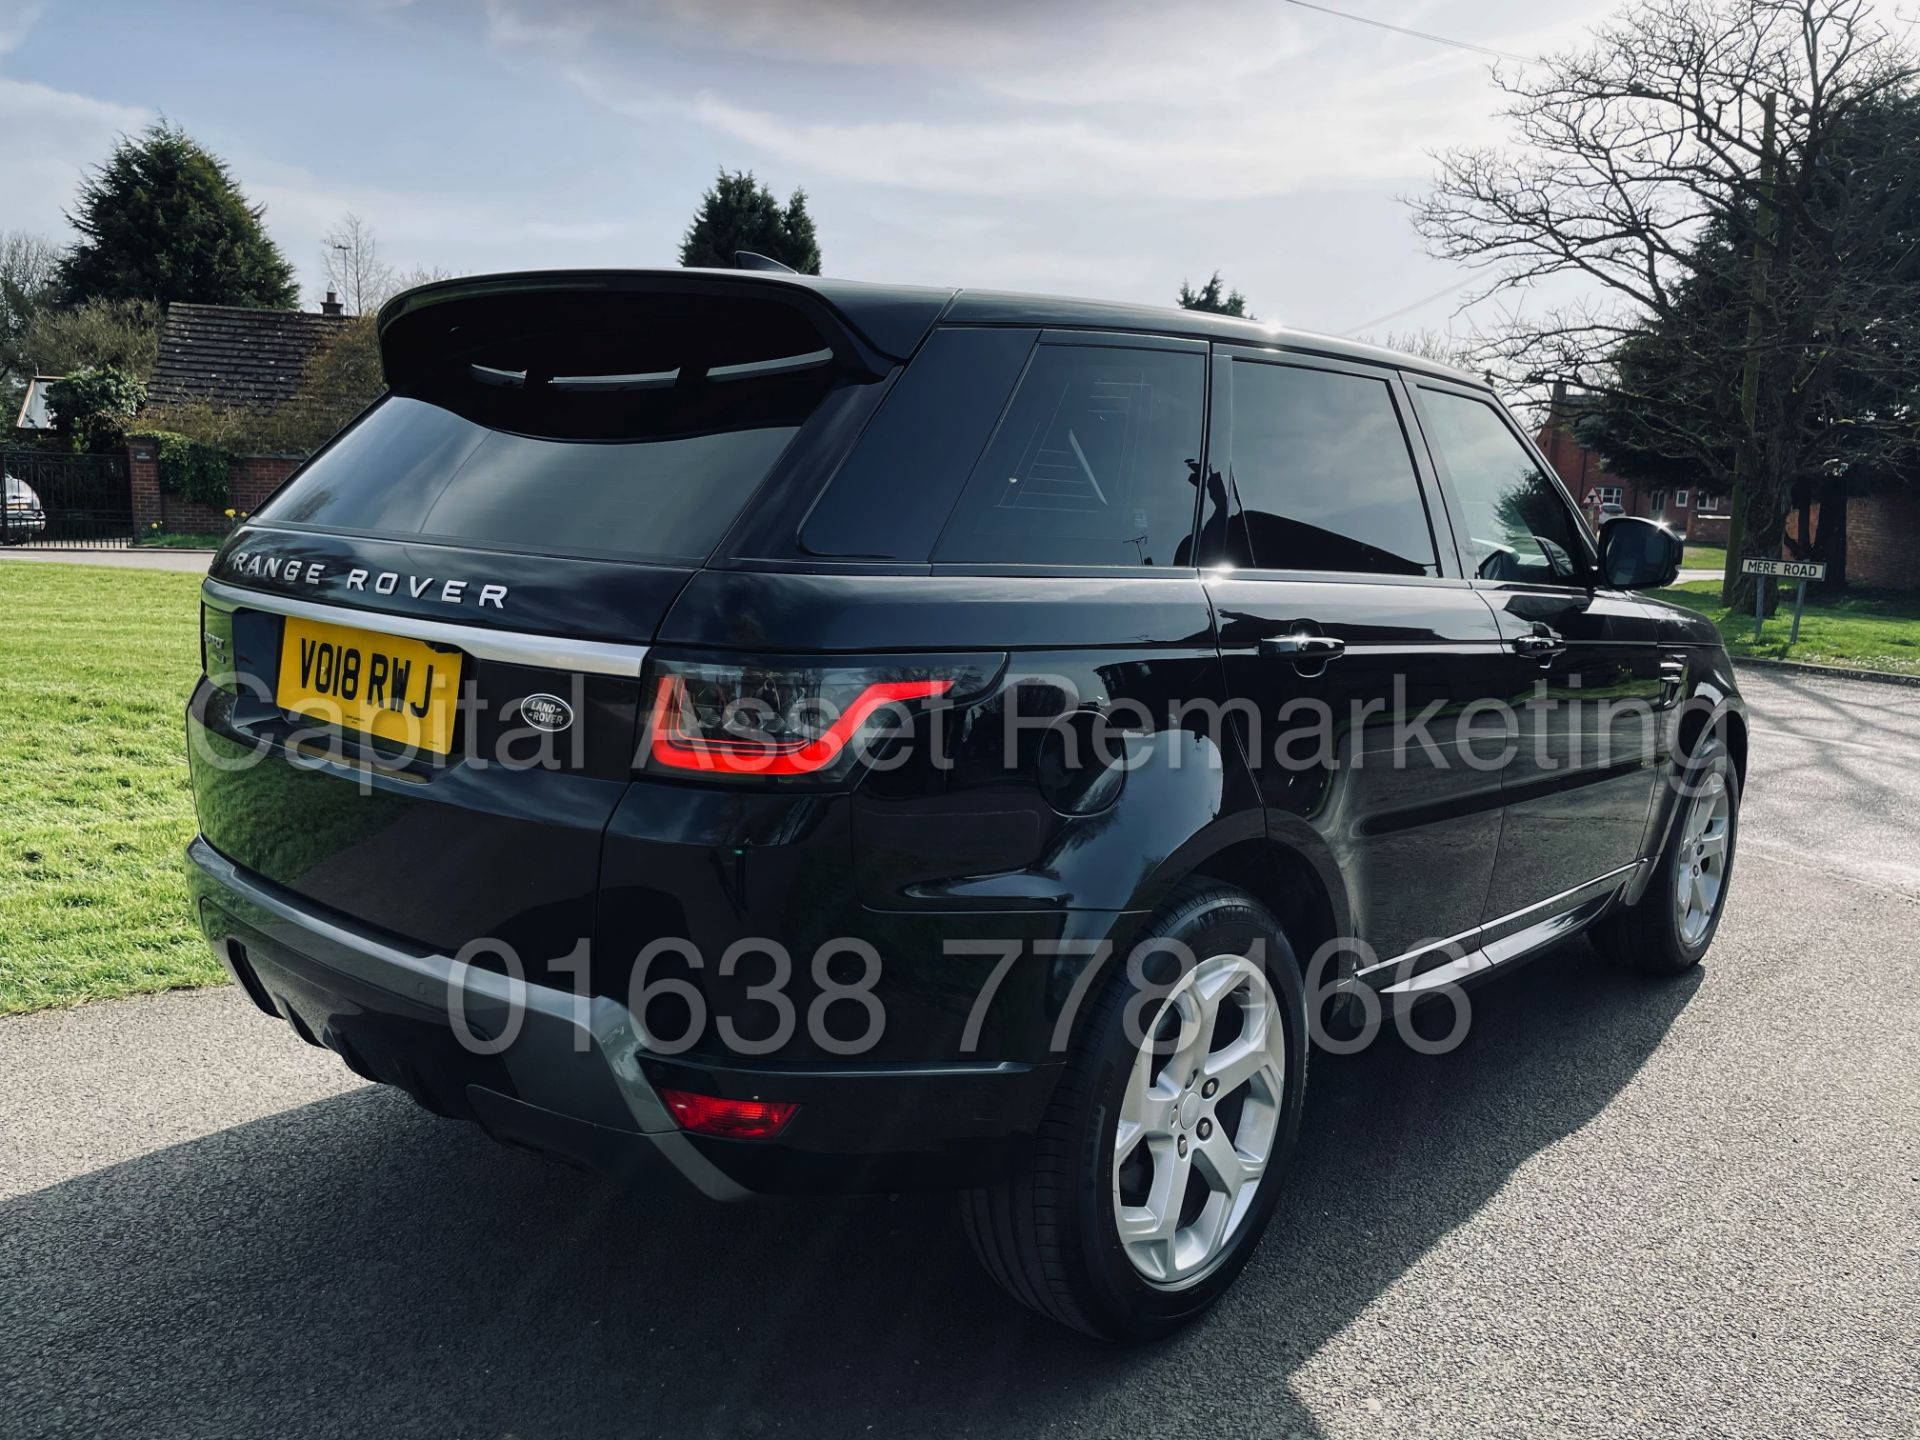 (On Sale) RANGE ROVER SPORT *HSE EDITION* SUV (2018 - NEW MODEL) '8 SPEED AUTO' *FULLY LOADED* - Image 12 of 55